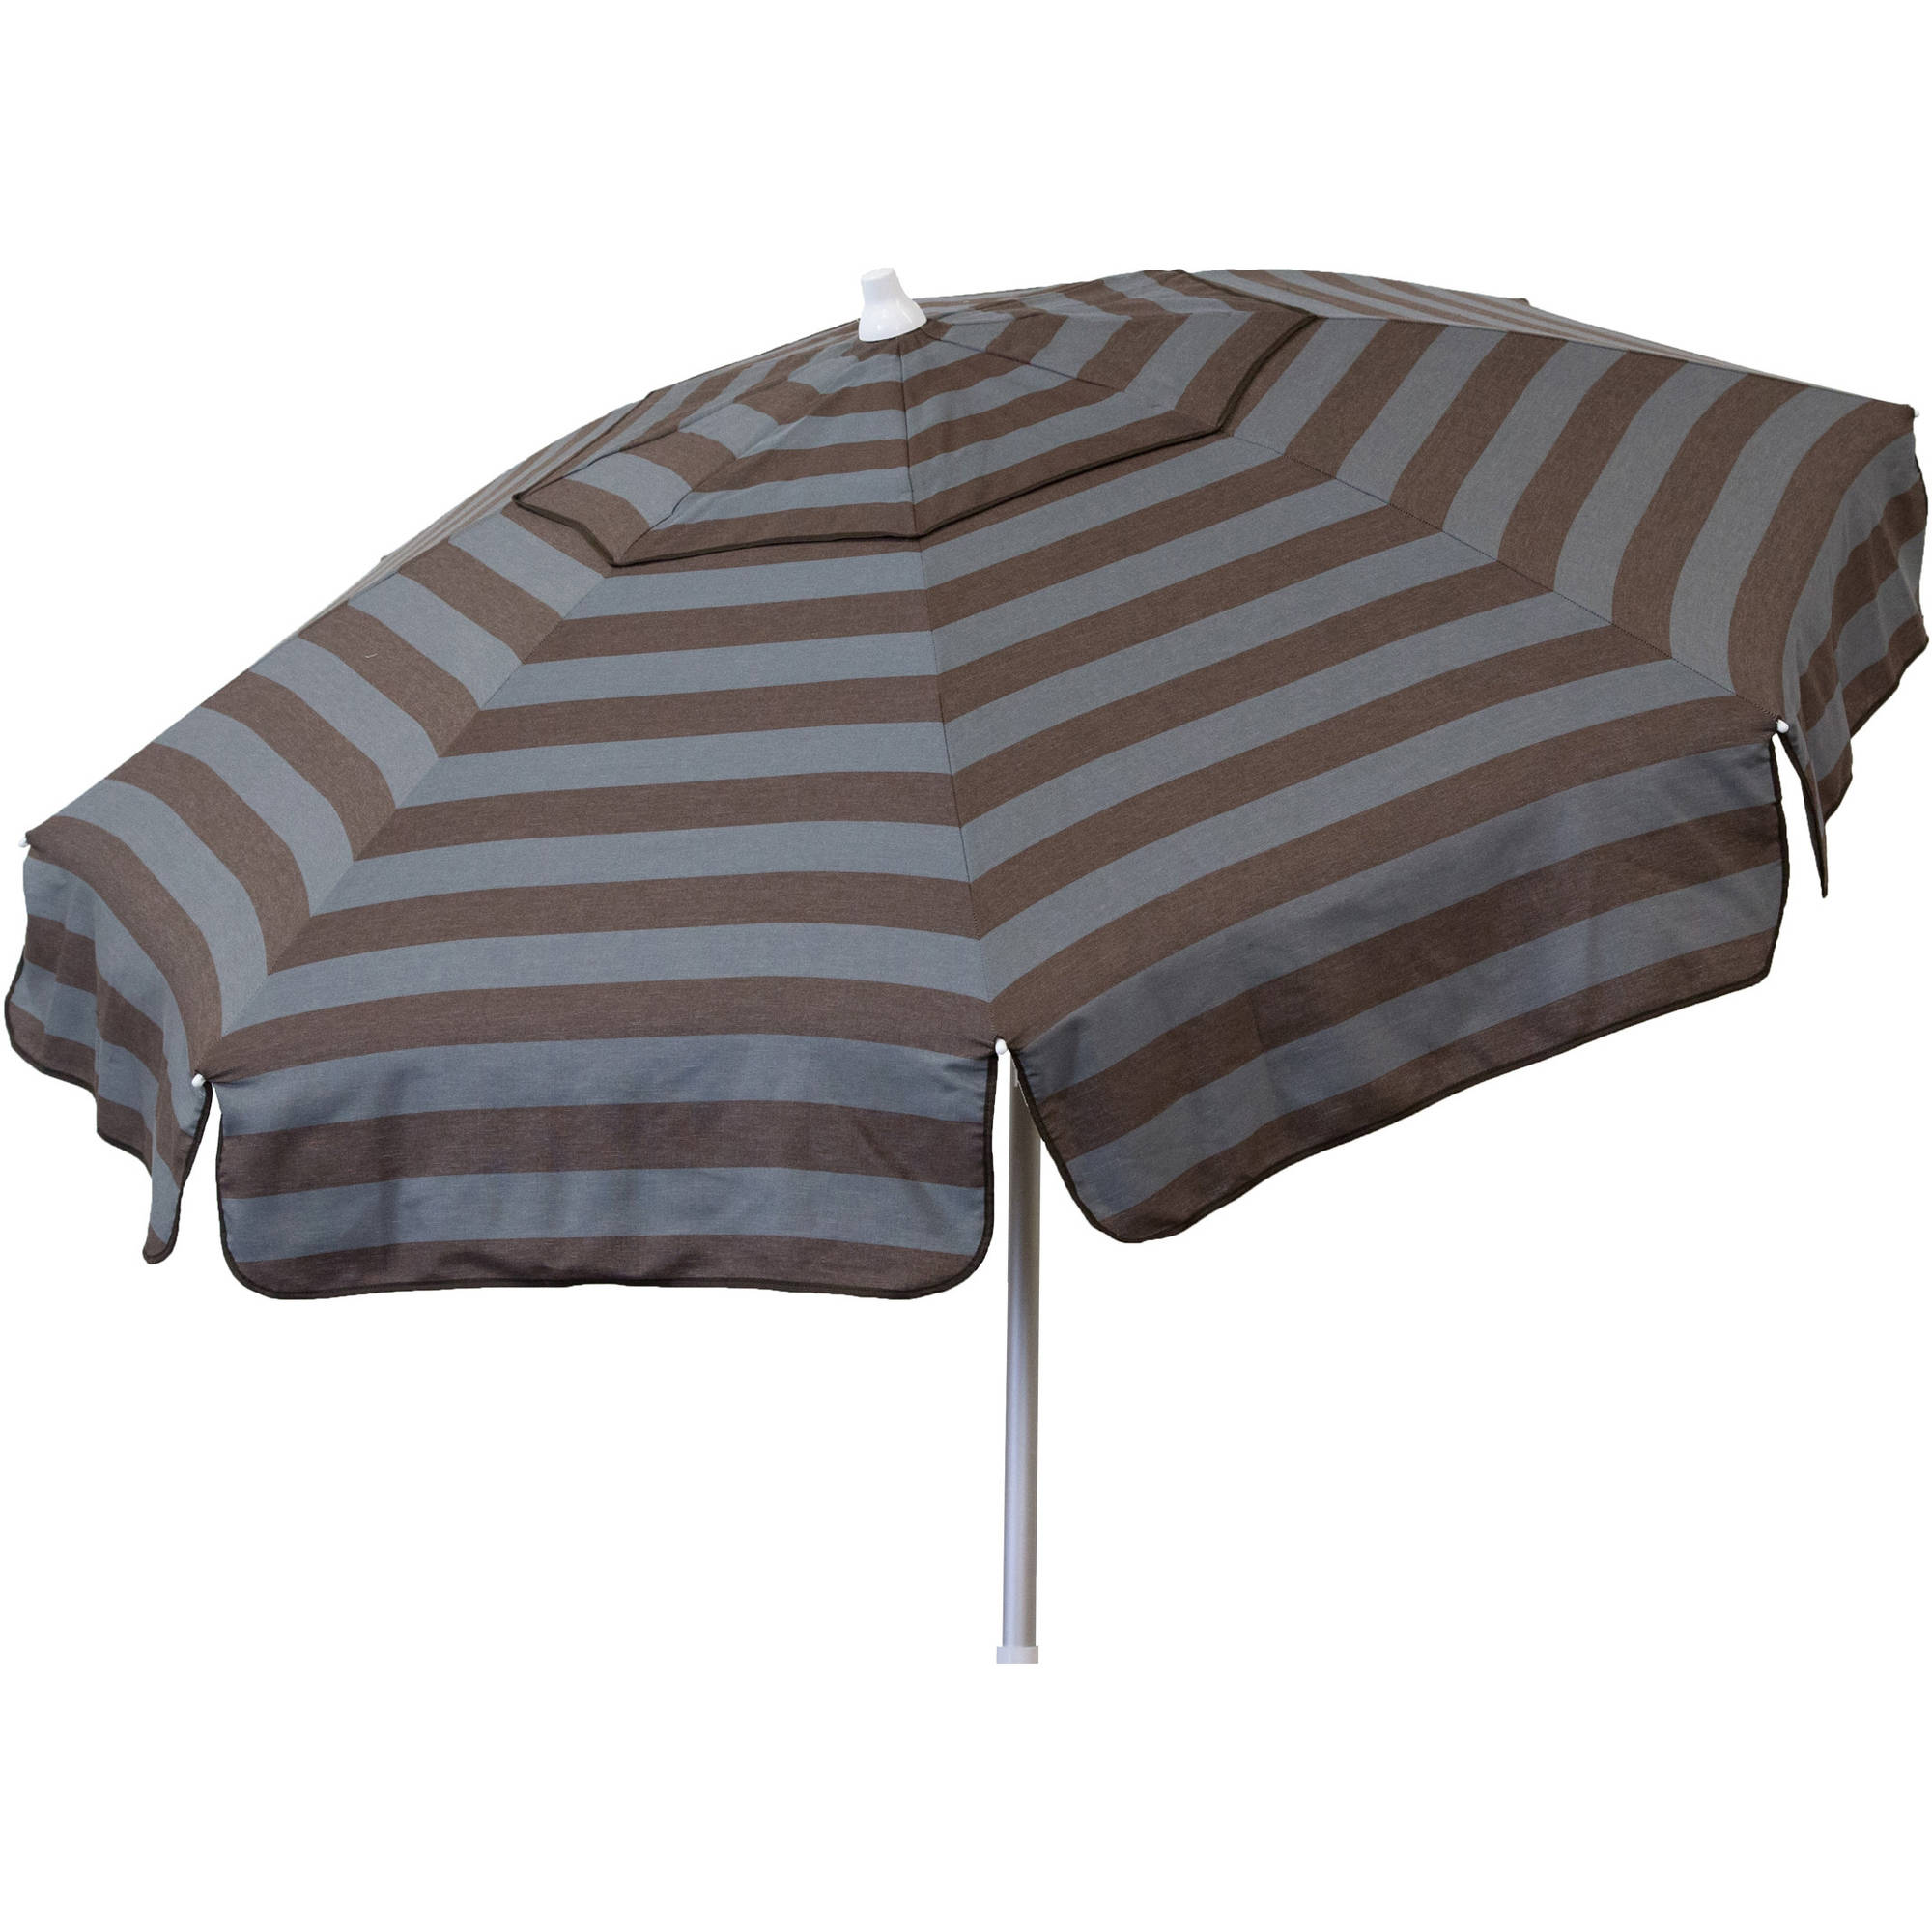 DestinationGear Euro 6' Umbrella Cabana Stripe Steel Grey and Chocolate Beach Pole